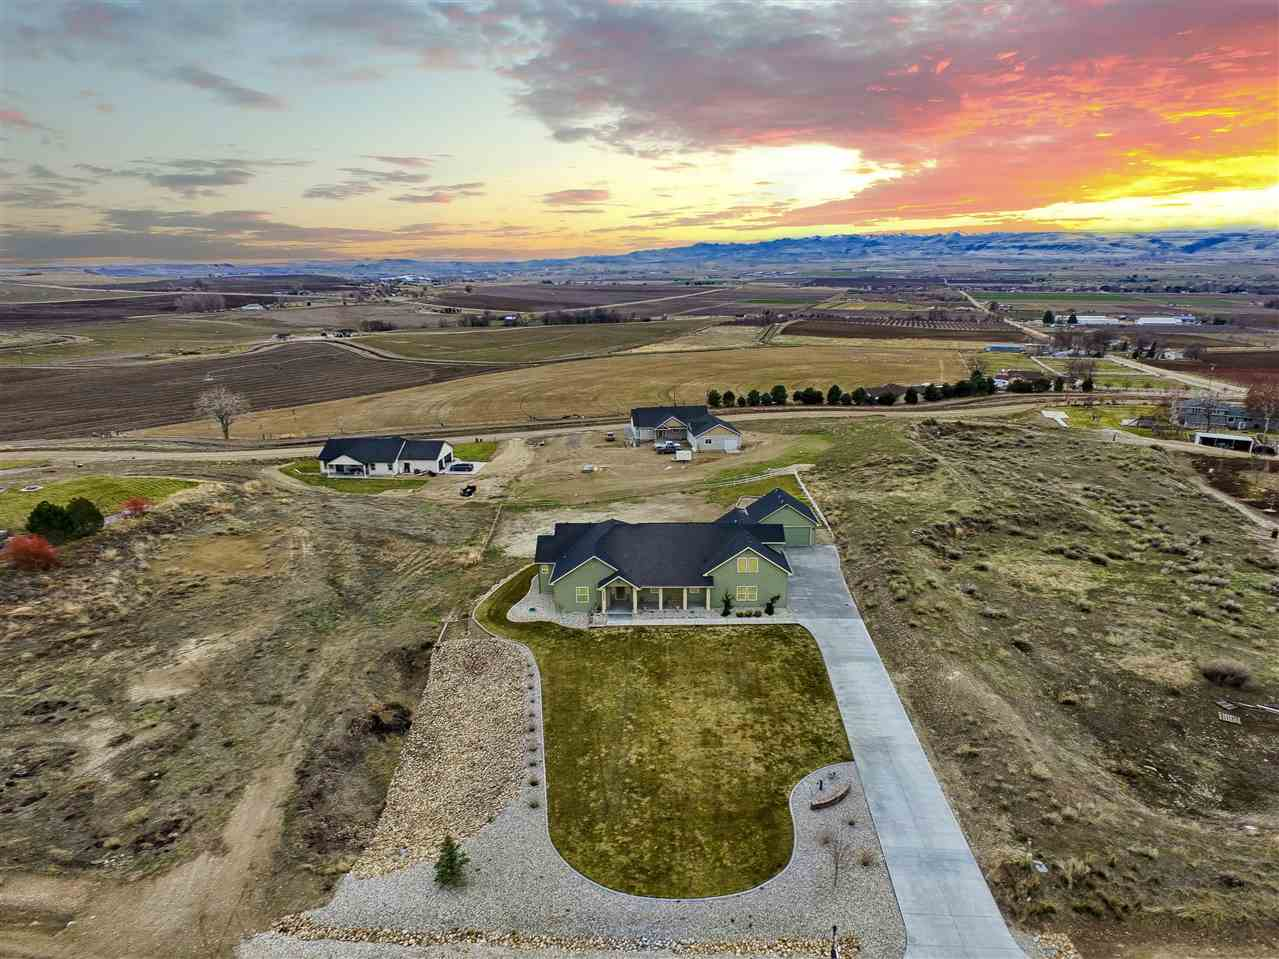 Single Family Home for Sale at 23909 Applewood Way 23909 Applewood Way Wilder, Idaho 83676